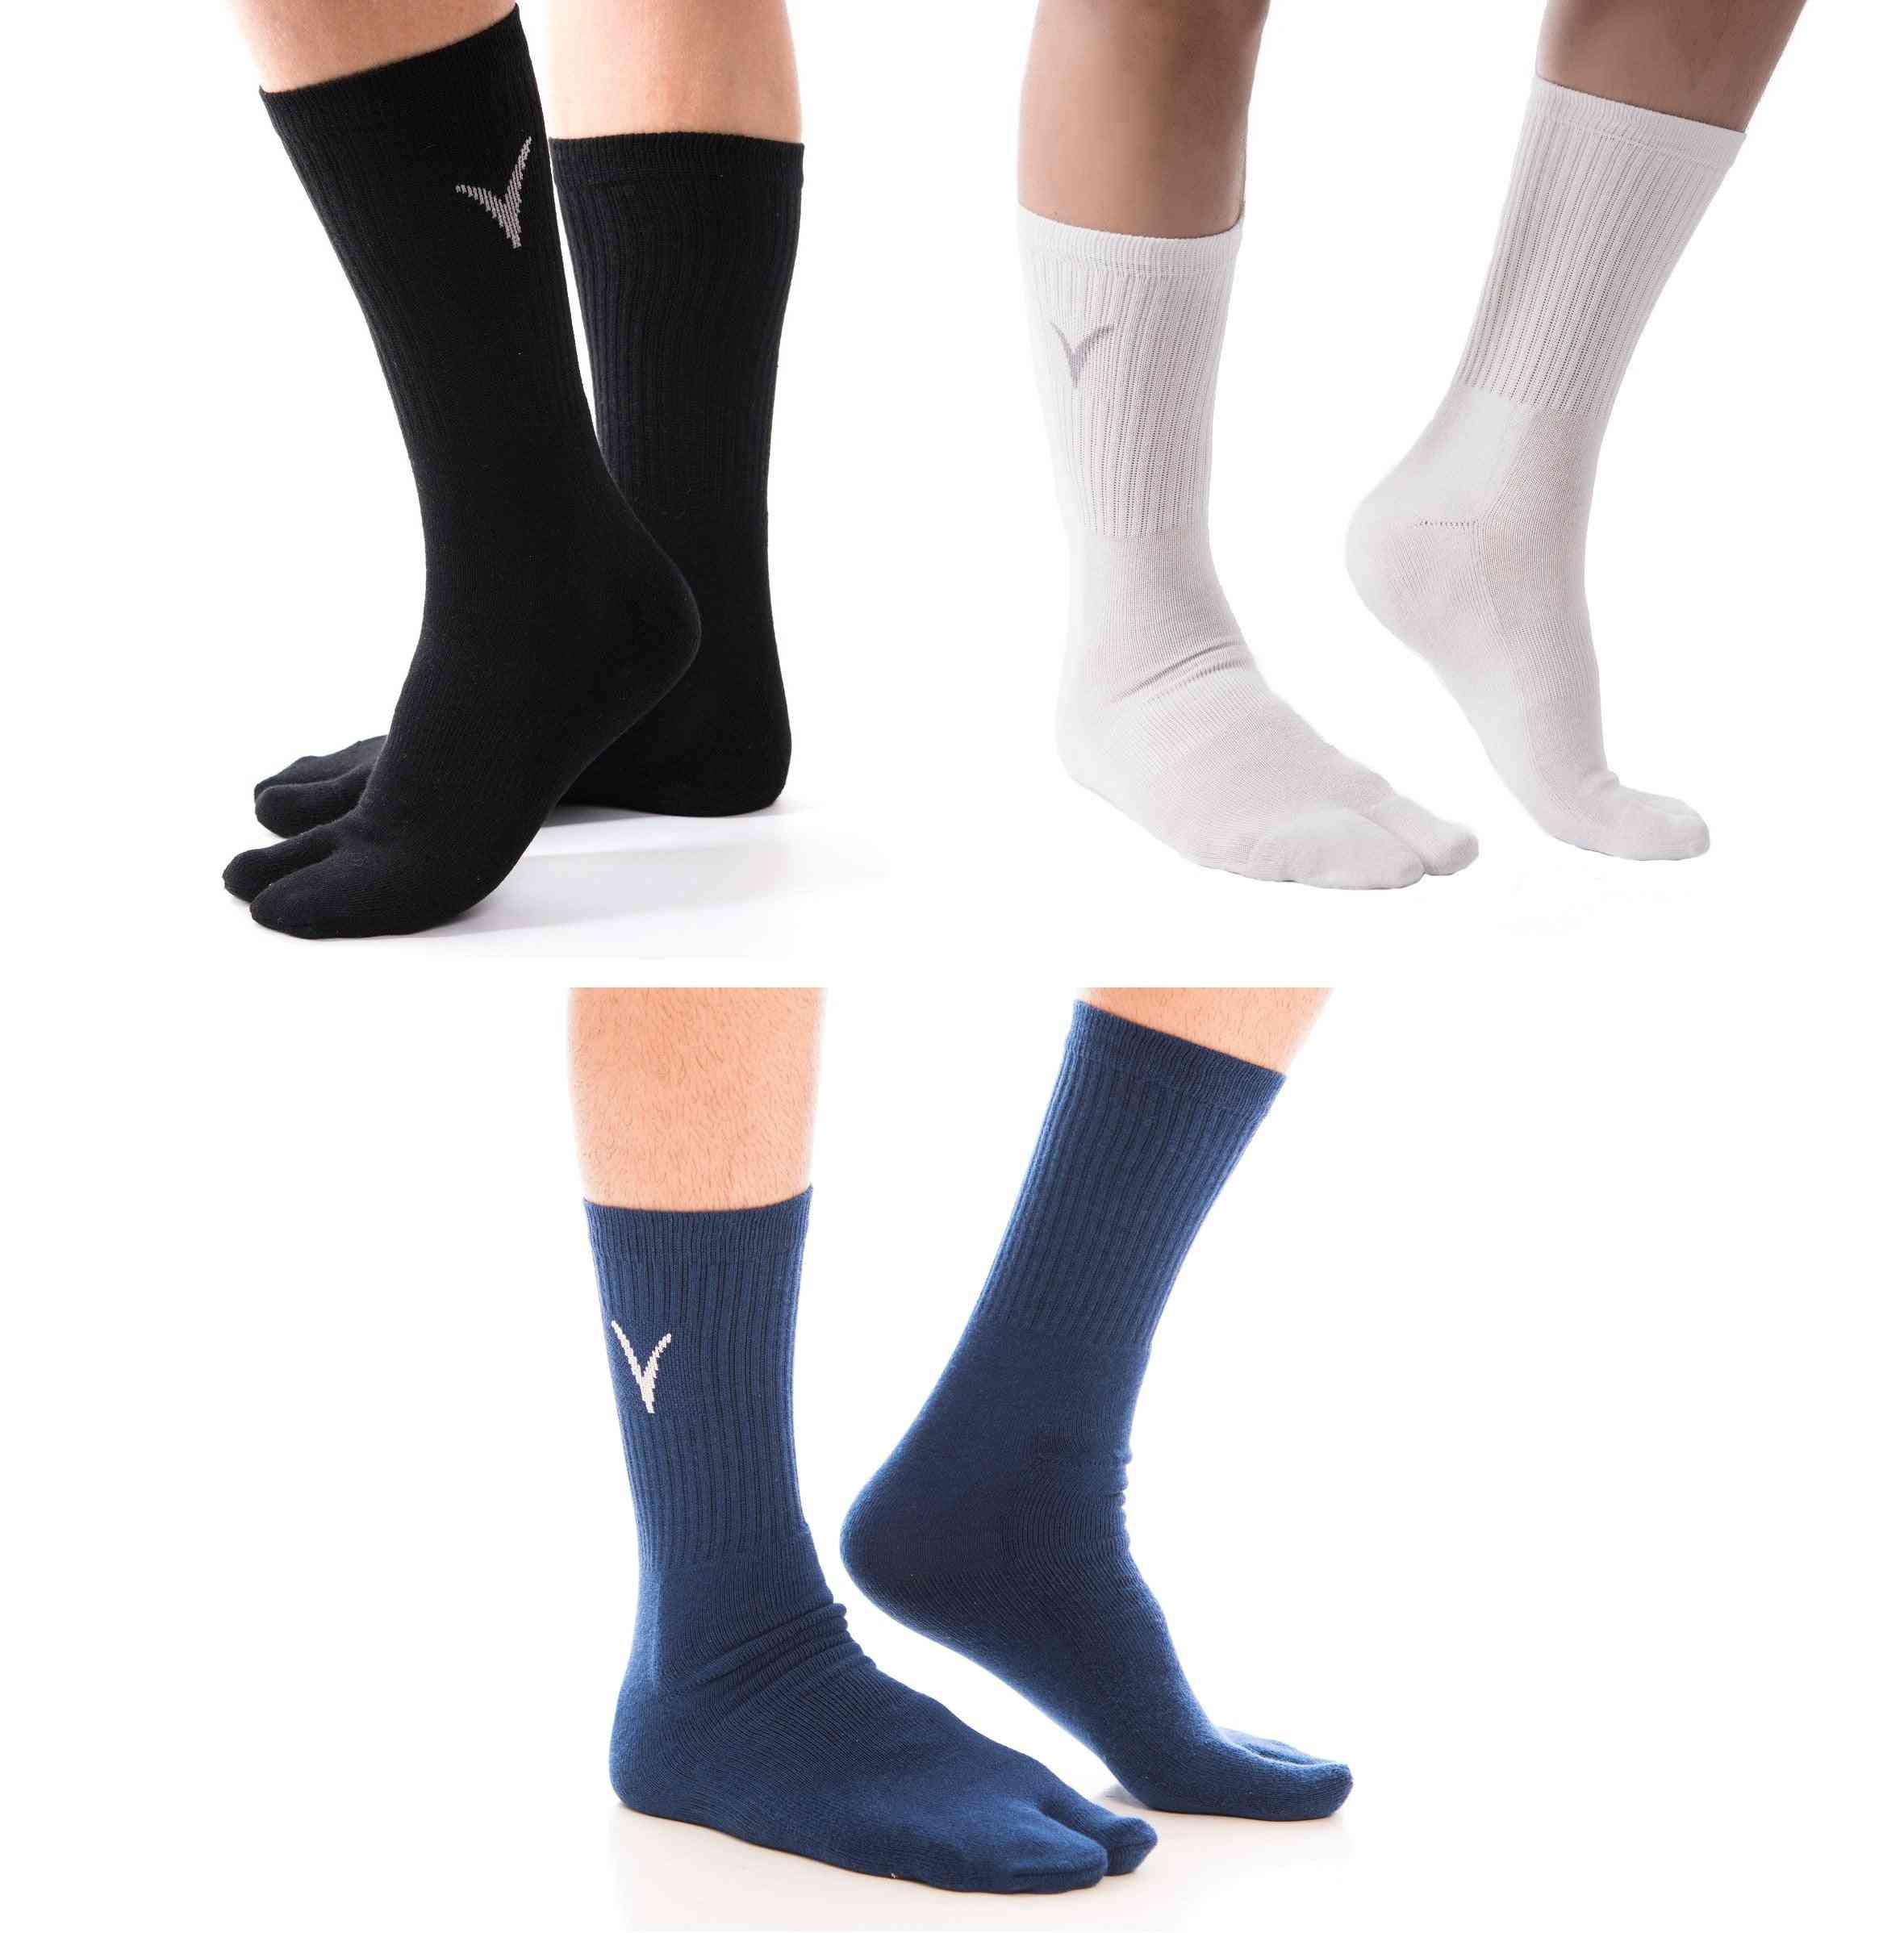 Flip-flop Thicker Socks And Women